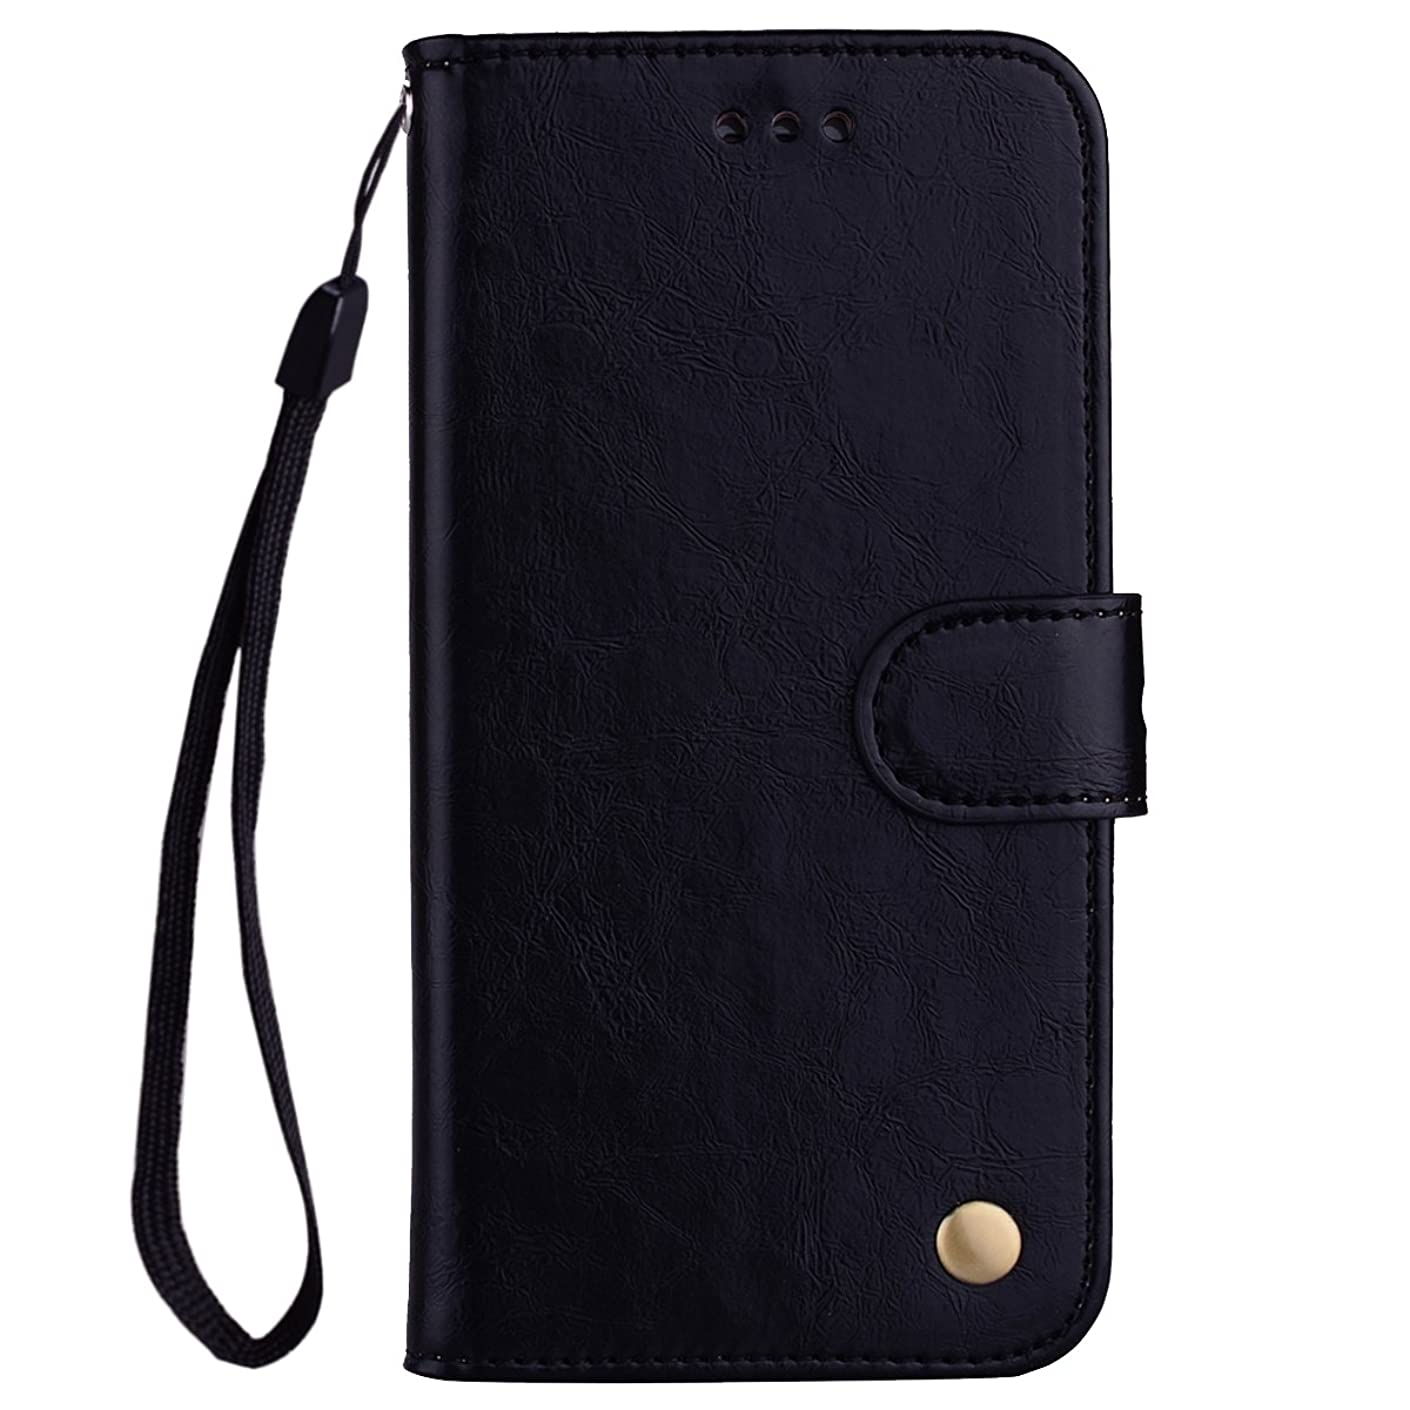 Scheam iPhone 7 Plus iPhone 8 Plus Wallet Case, [Folio Style ] Premium iPhone 7 Plus iPhone 8 Plus Card Cases Stand Feature for iPhone 7 Plus iPhone 8 Plus [Black ] Leather Case Flip Cover with